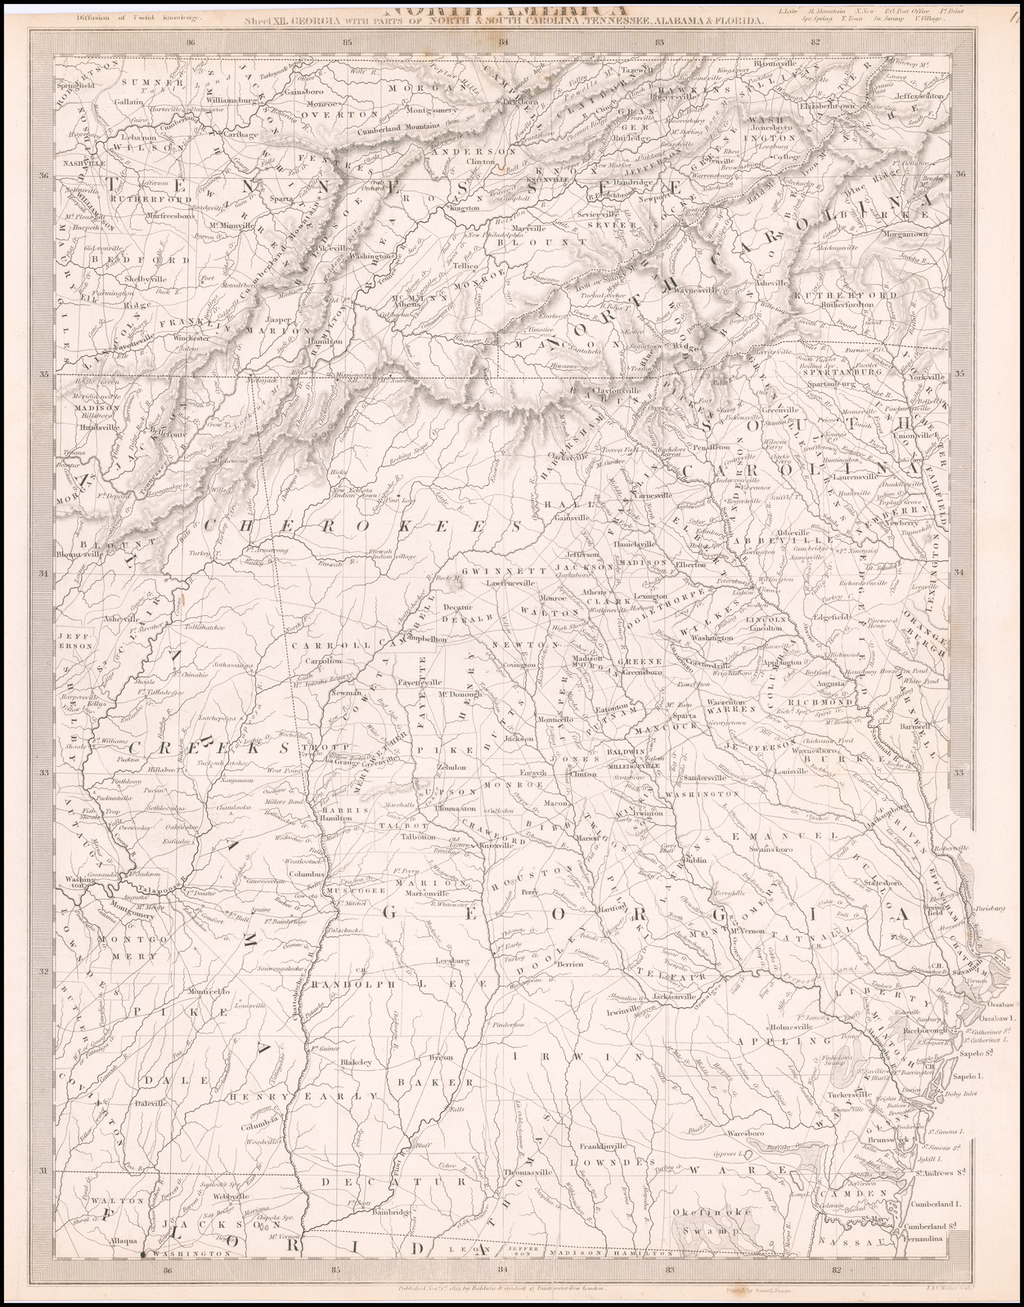 North America Sheet XII. Georgia with Parts of North & South Carolina, Tennessee, Alabama & Florida By SDUK